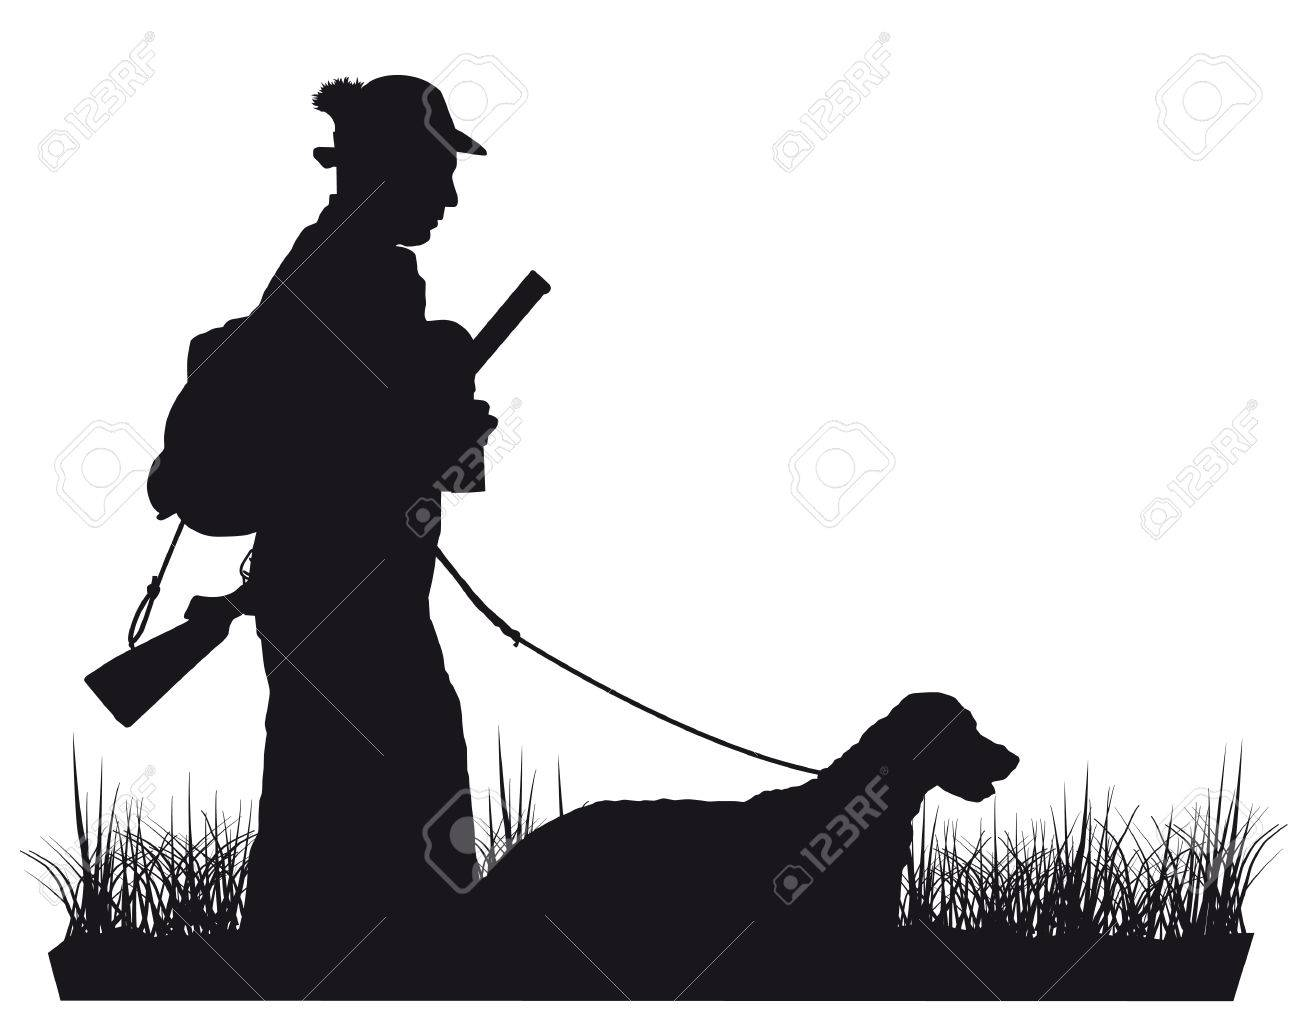 black and white silhouette Hunter with dog - 43834219